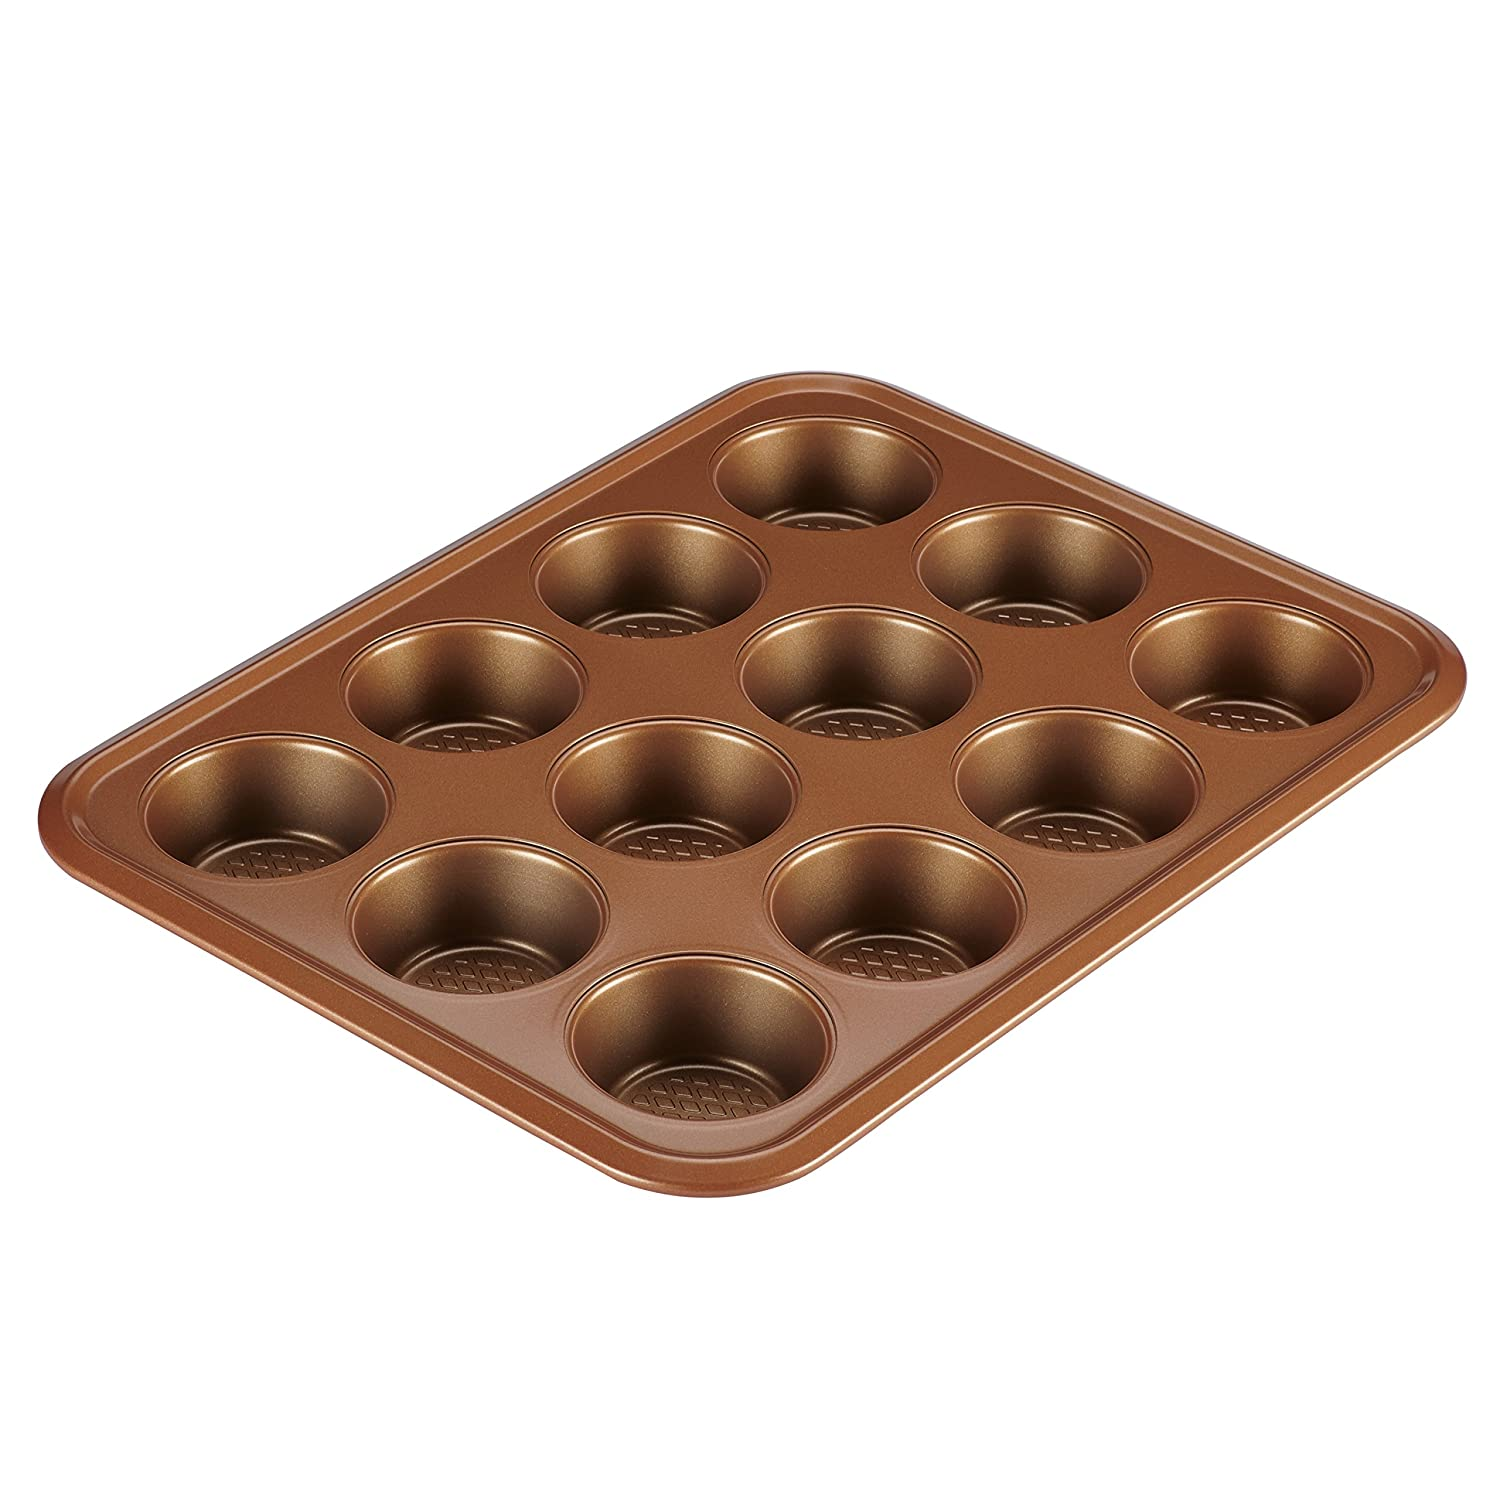 Ayesha Curry 47002 Bakeware 12-Cup Muffin Pans, Copper